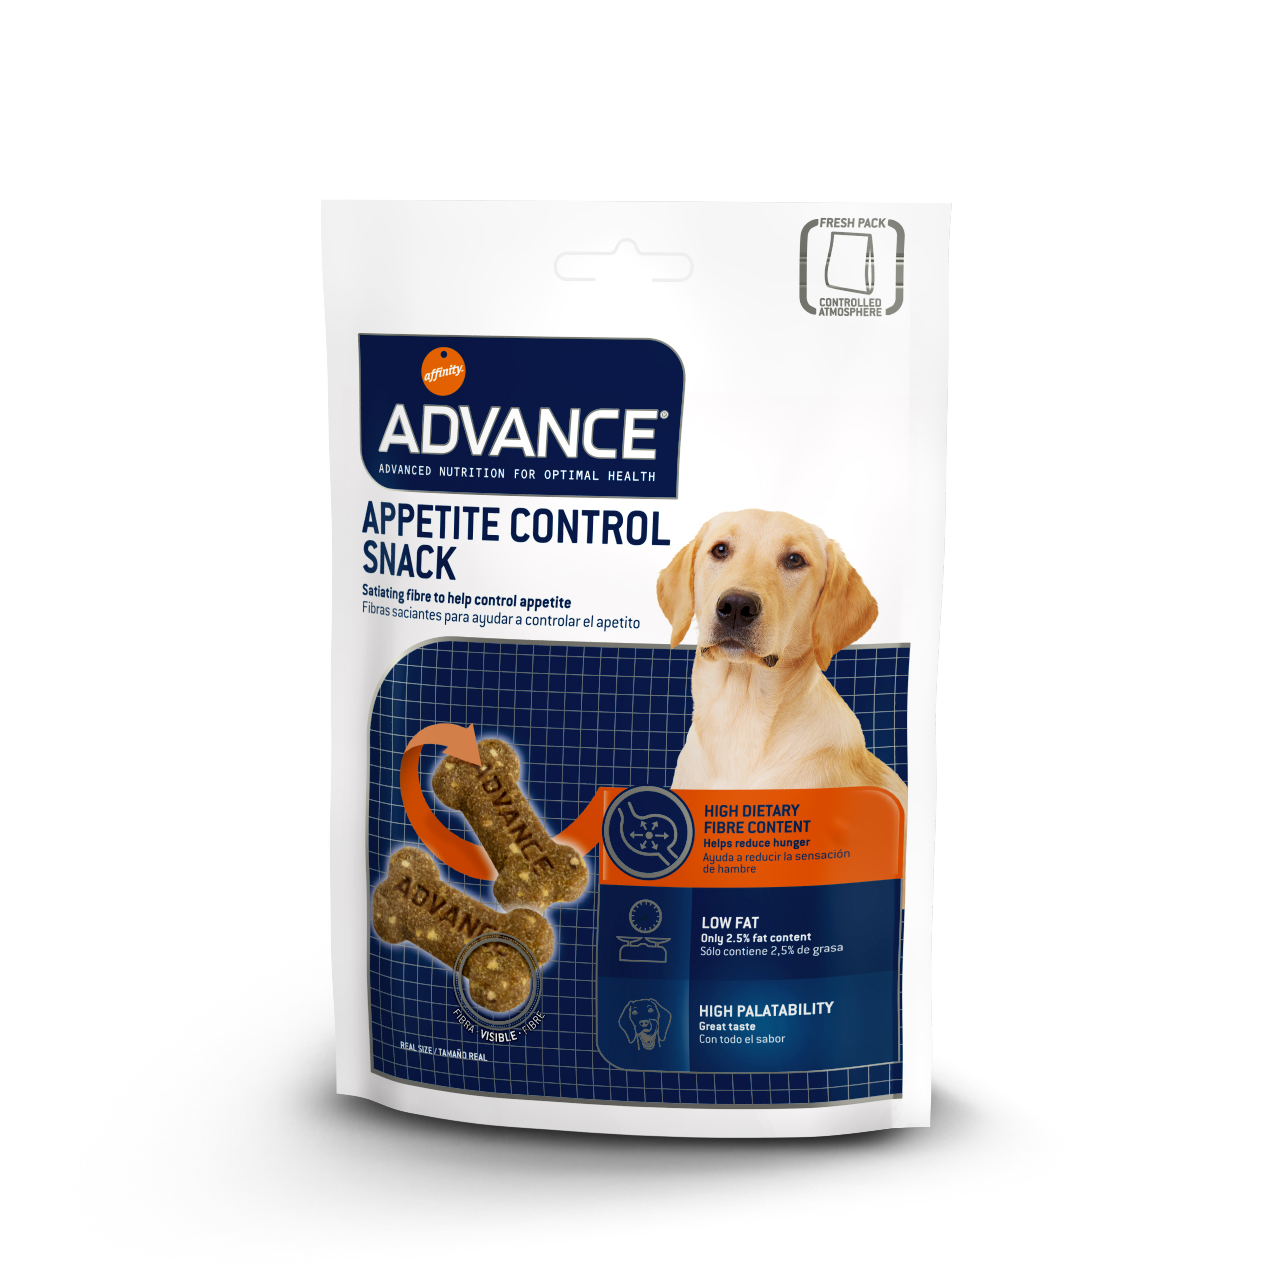 ADVANCE SNACK APPETITE CONTROL